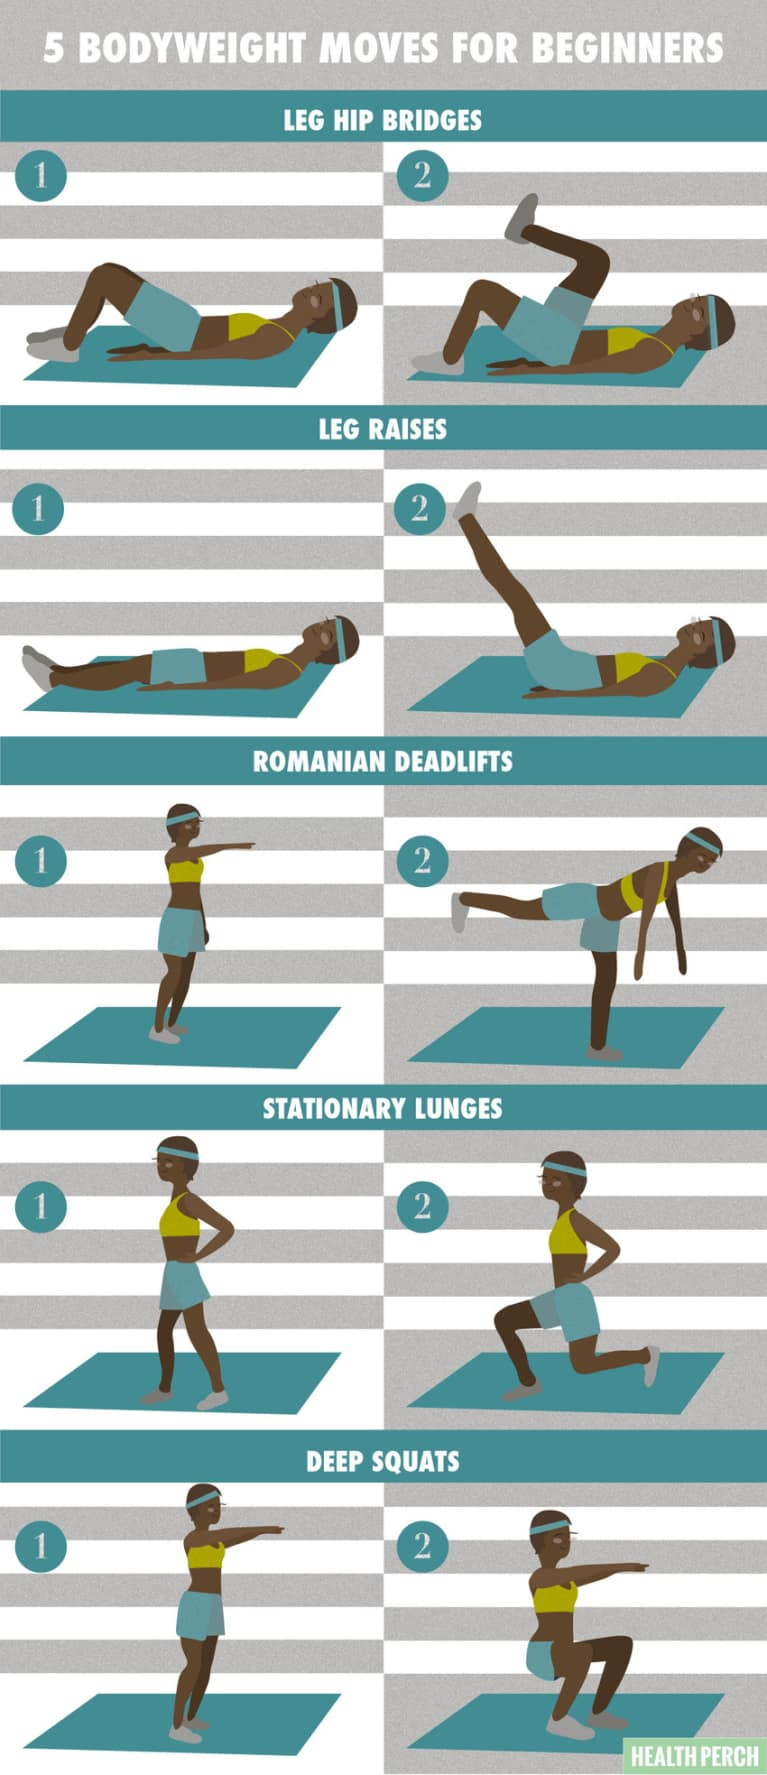 Body-Weight Moves For Beginners (Infographic)